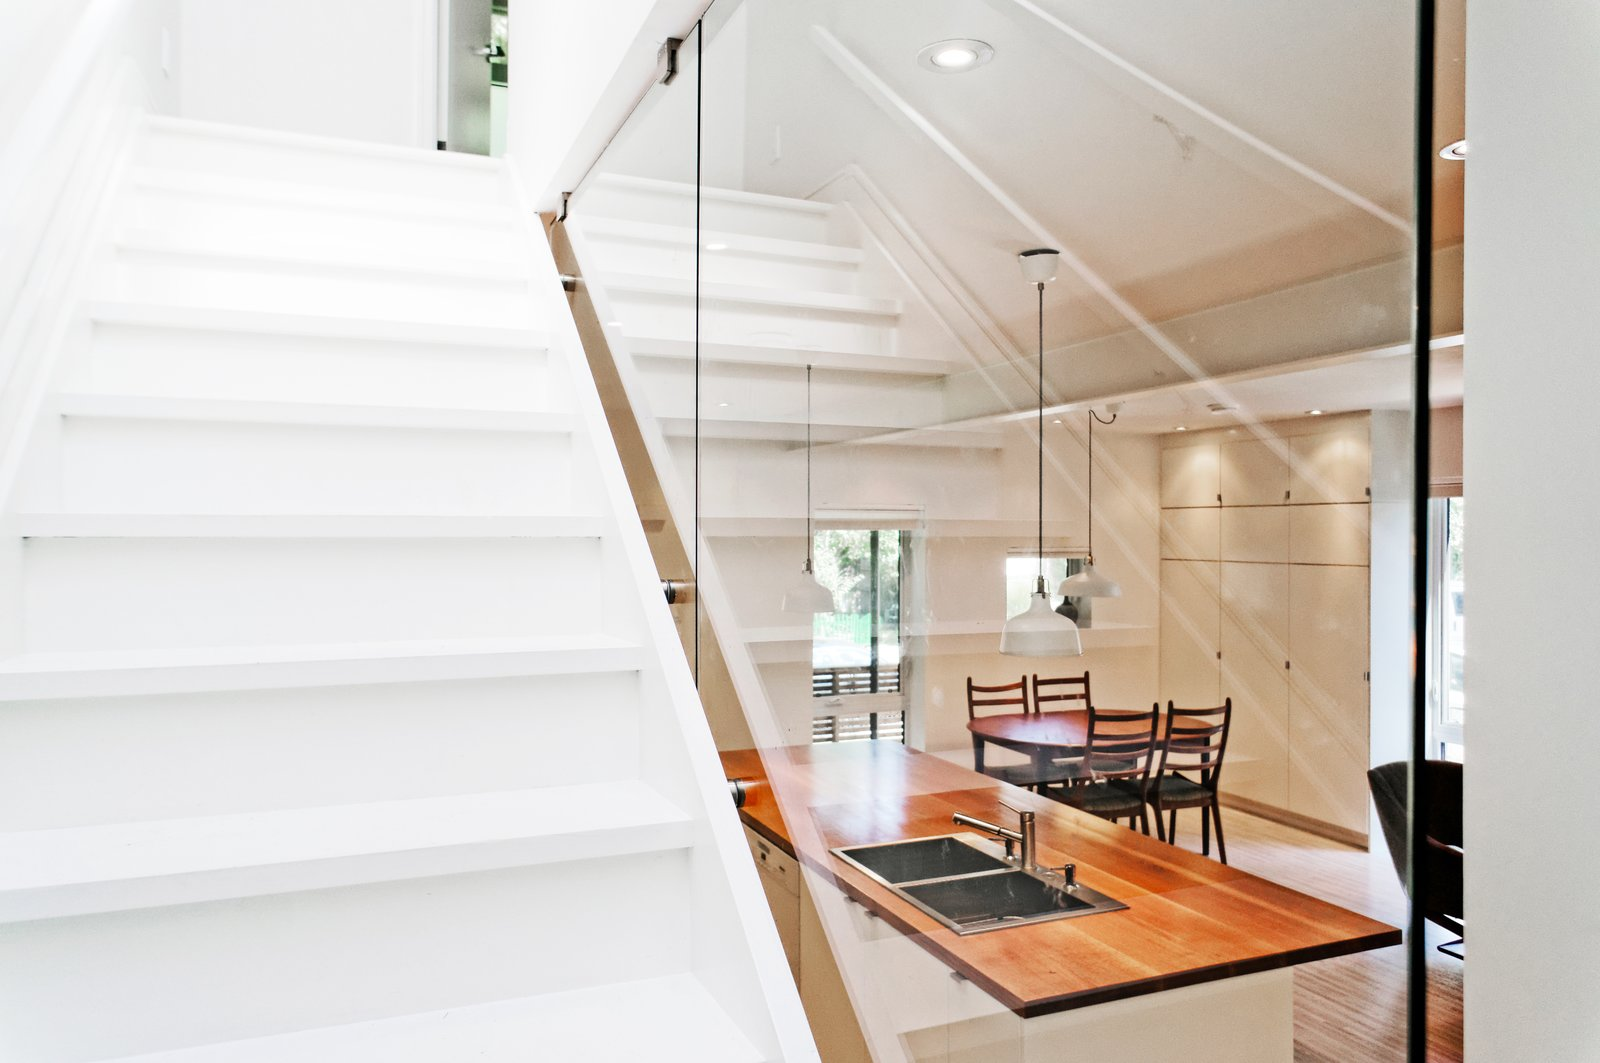 Wood Tread, Glass Railing, Bar, Light Hardwood Floor, Ceiling Lighting, Kitchen, Wood Counter, and White Cabinet Our House - Staircase  Our House by Solares Architecture